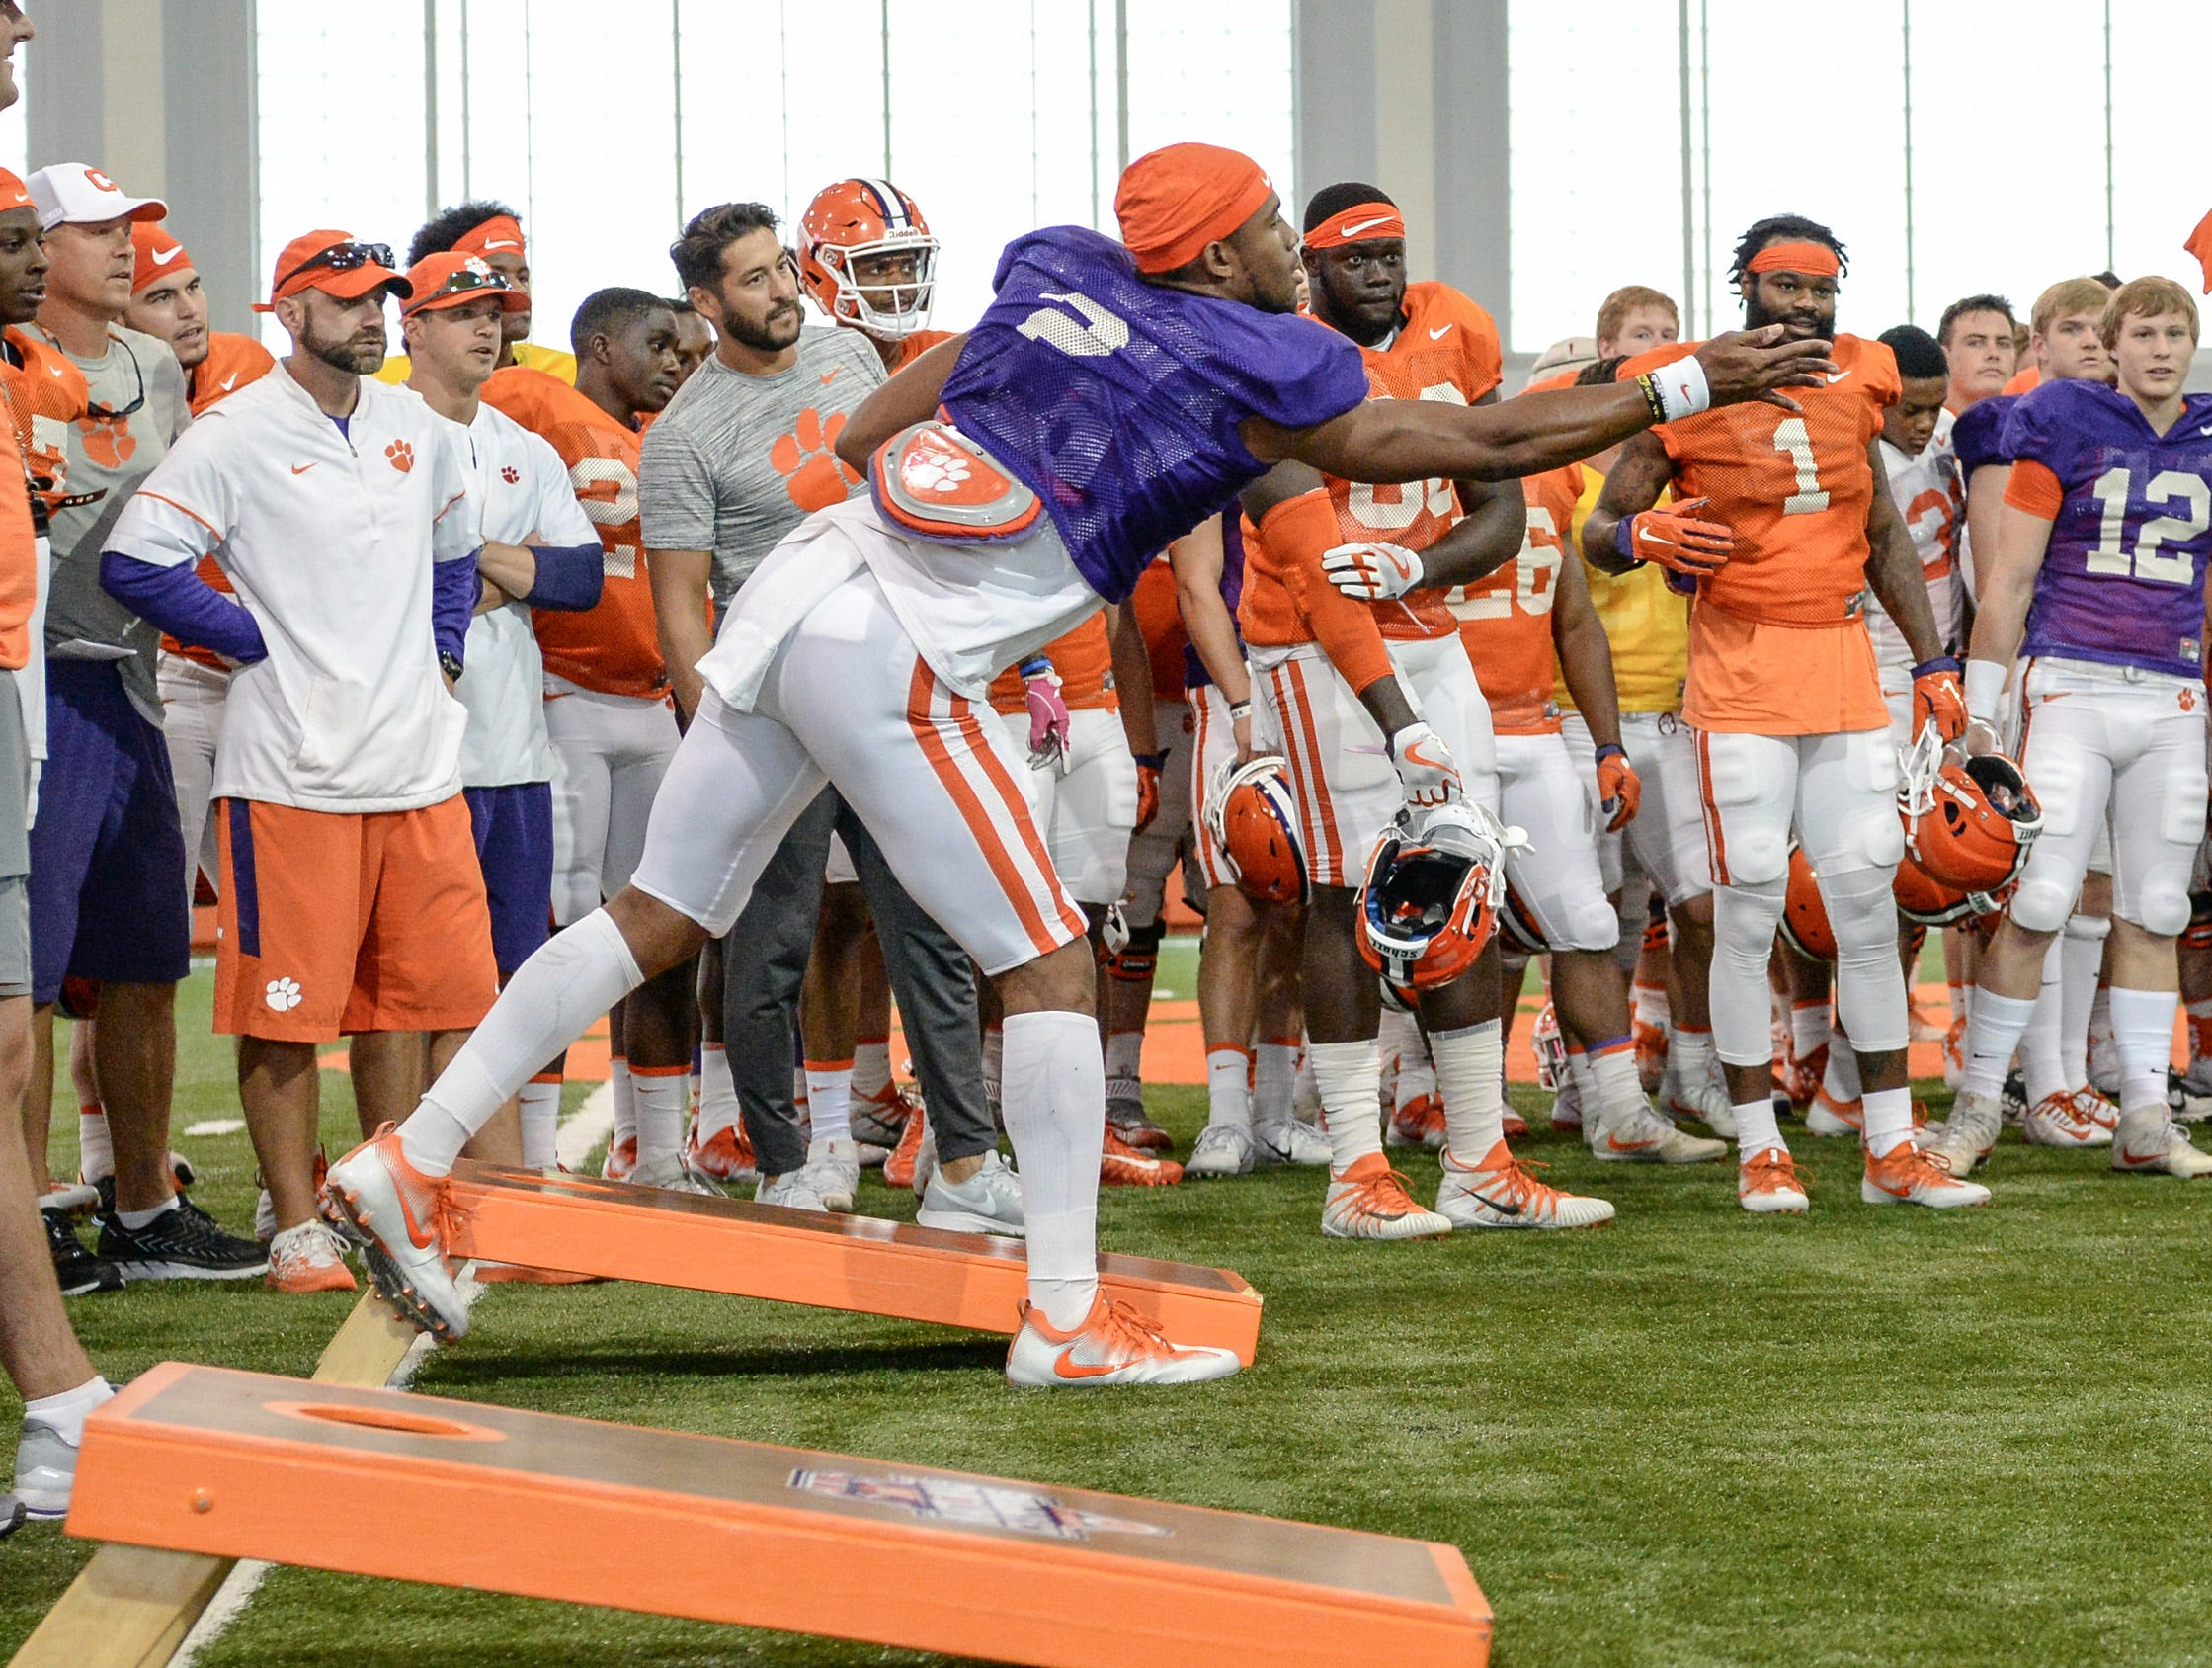 Clemson quarterback Kelly Bryant (2) tosses a beanbag during a corn hole game with Clemson cornerback Trayvon Mullen (1) during fall practice in Clemson on Wednesday.